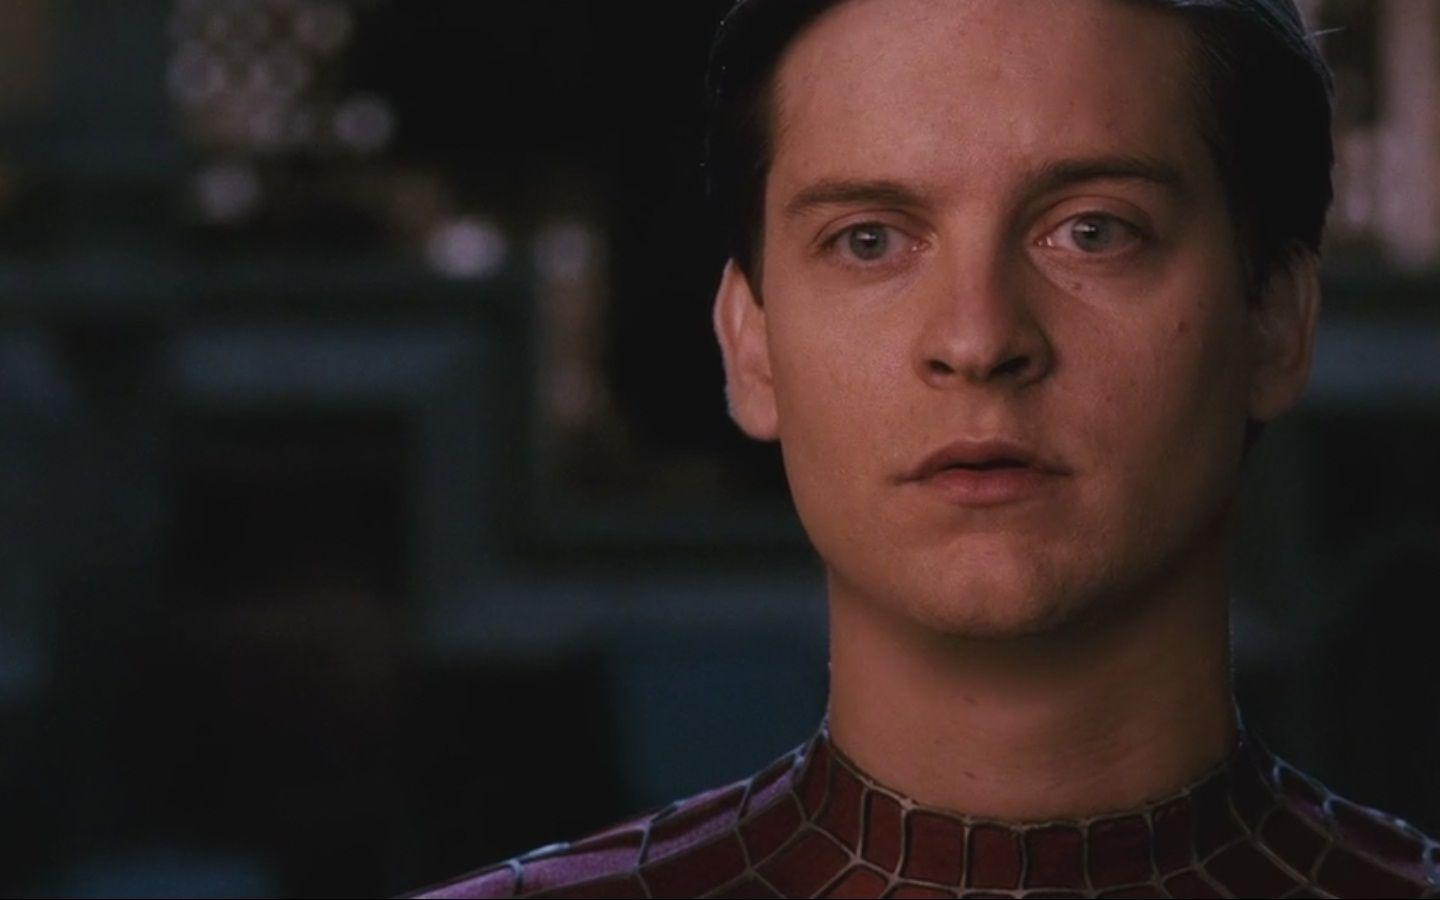 Tobey&wallpapers